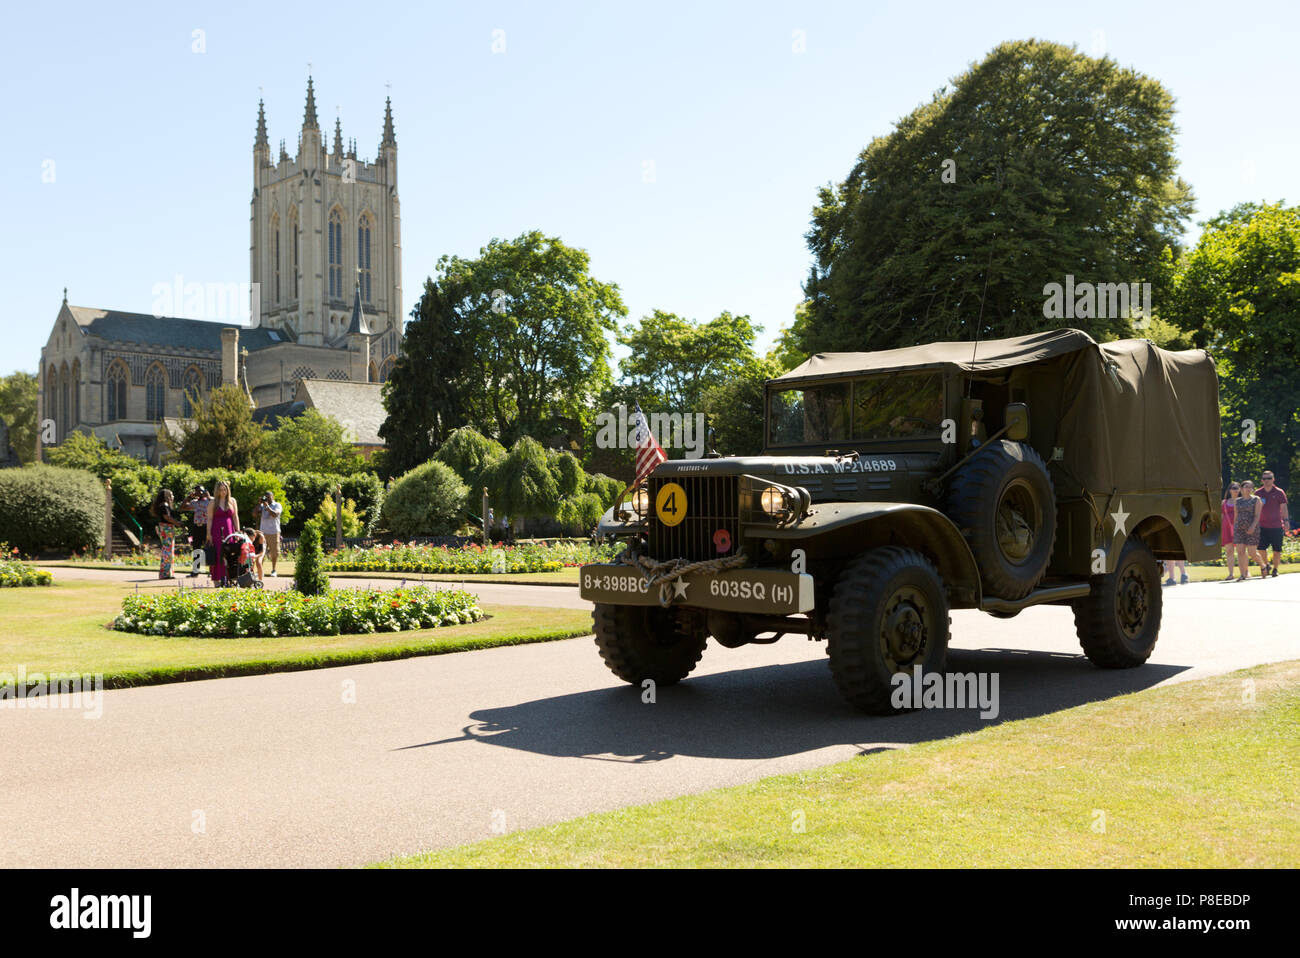 US Army truck driving through Abbey Gardens, Bury St Edmunds during Armed Forces Day with St Edmundsbury Cathedral in background. Unsharpened - Stock Image